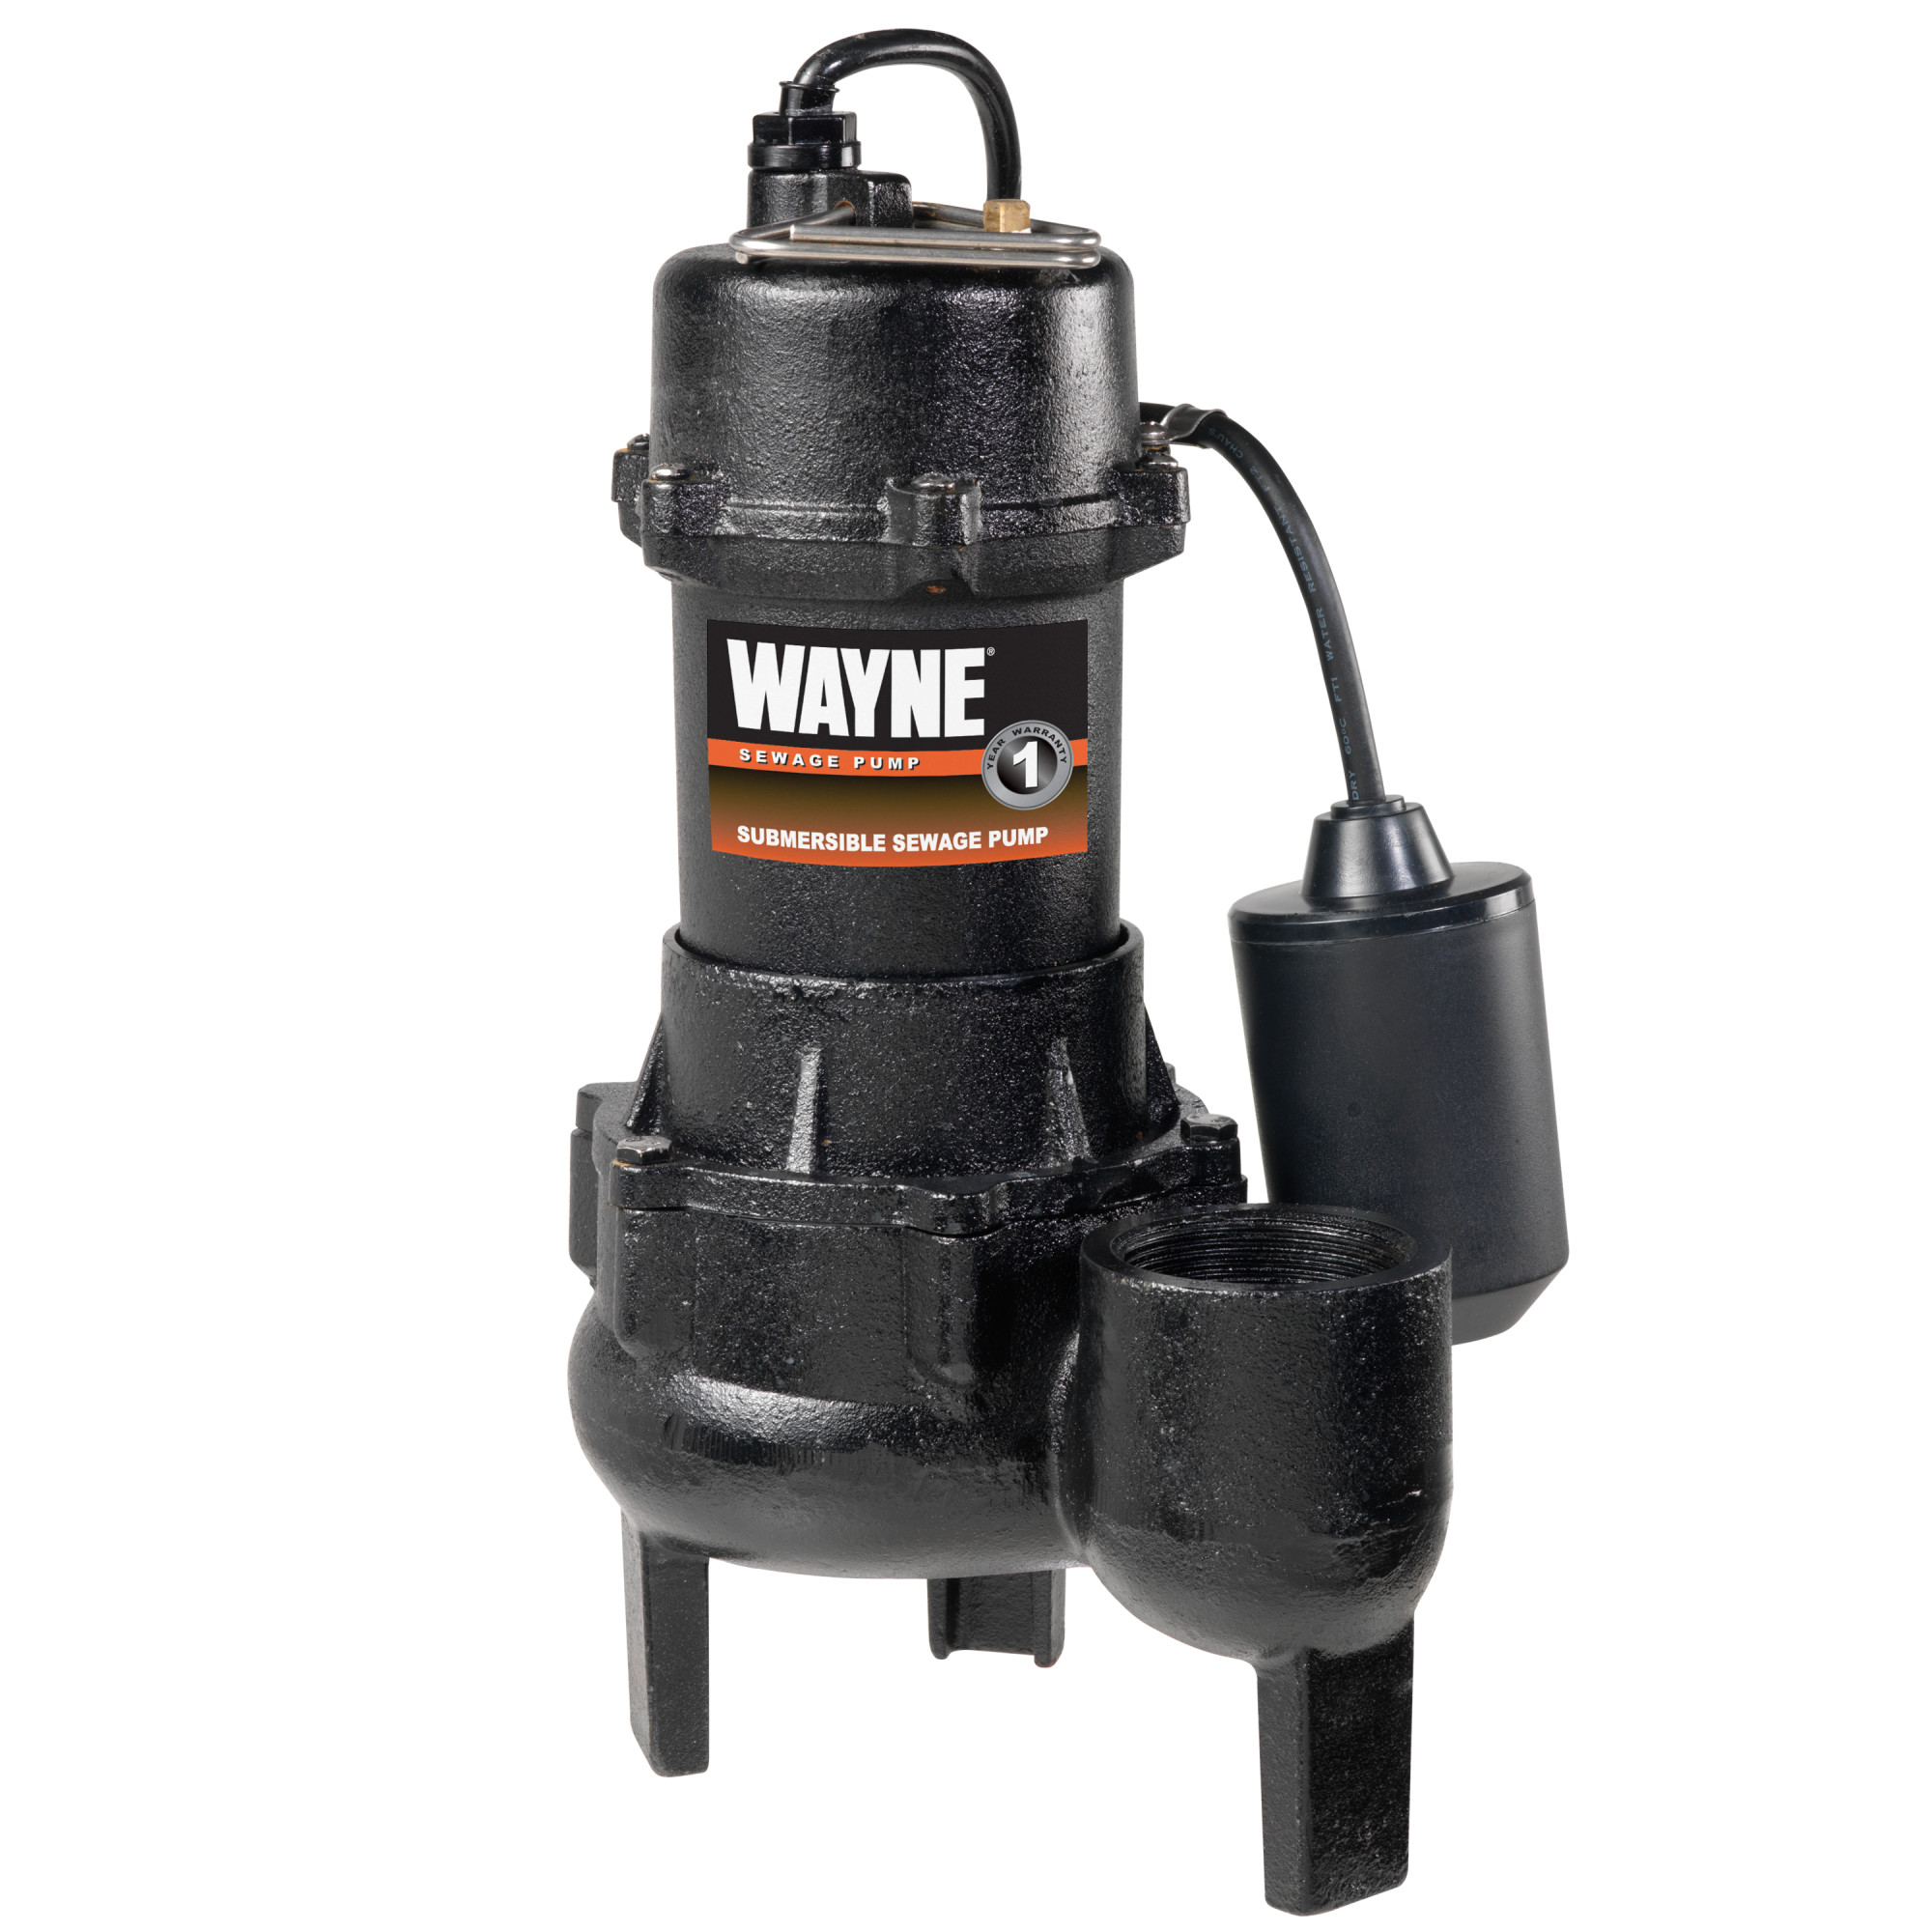 WAYNE RPP50 1/2 HP Cast Iron Submersible Sewage Pump with Automatic Switch